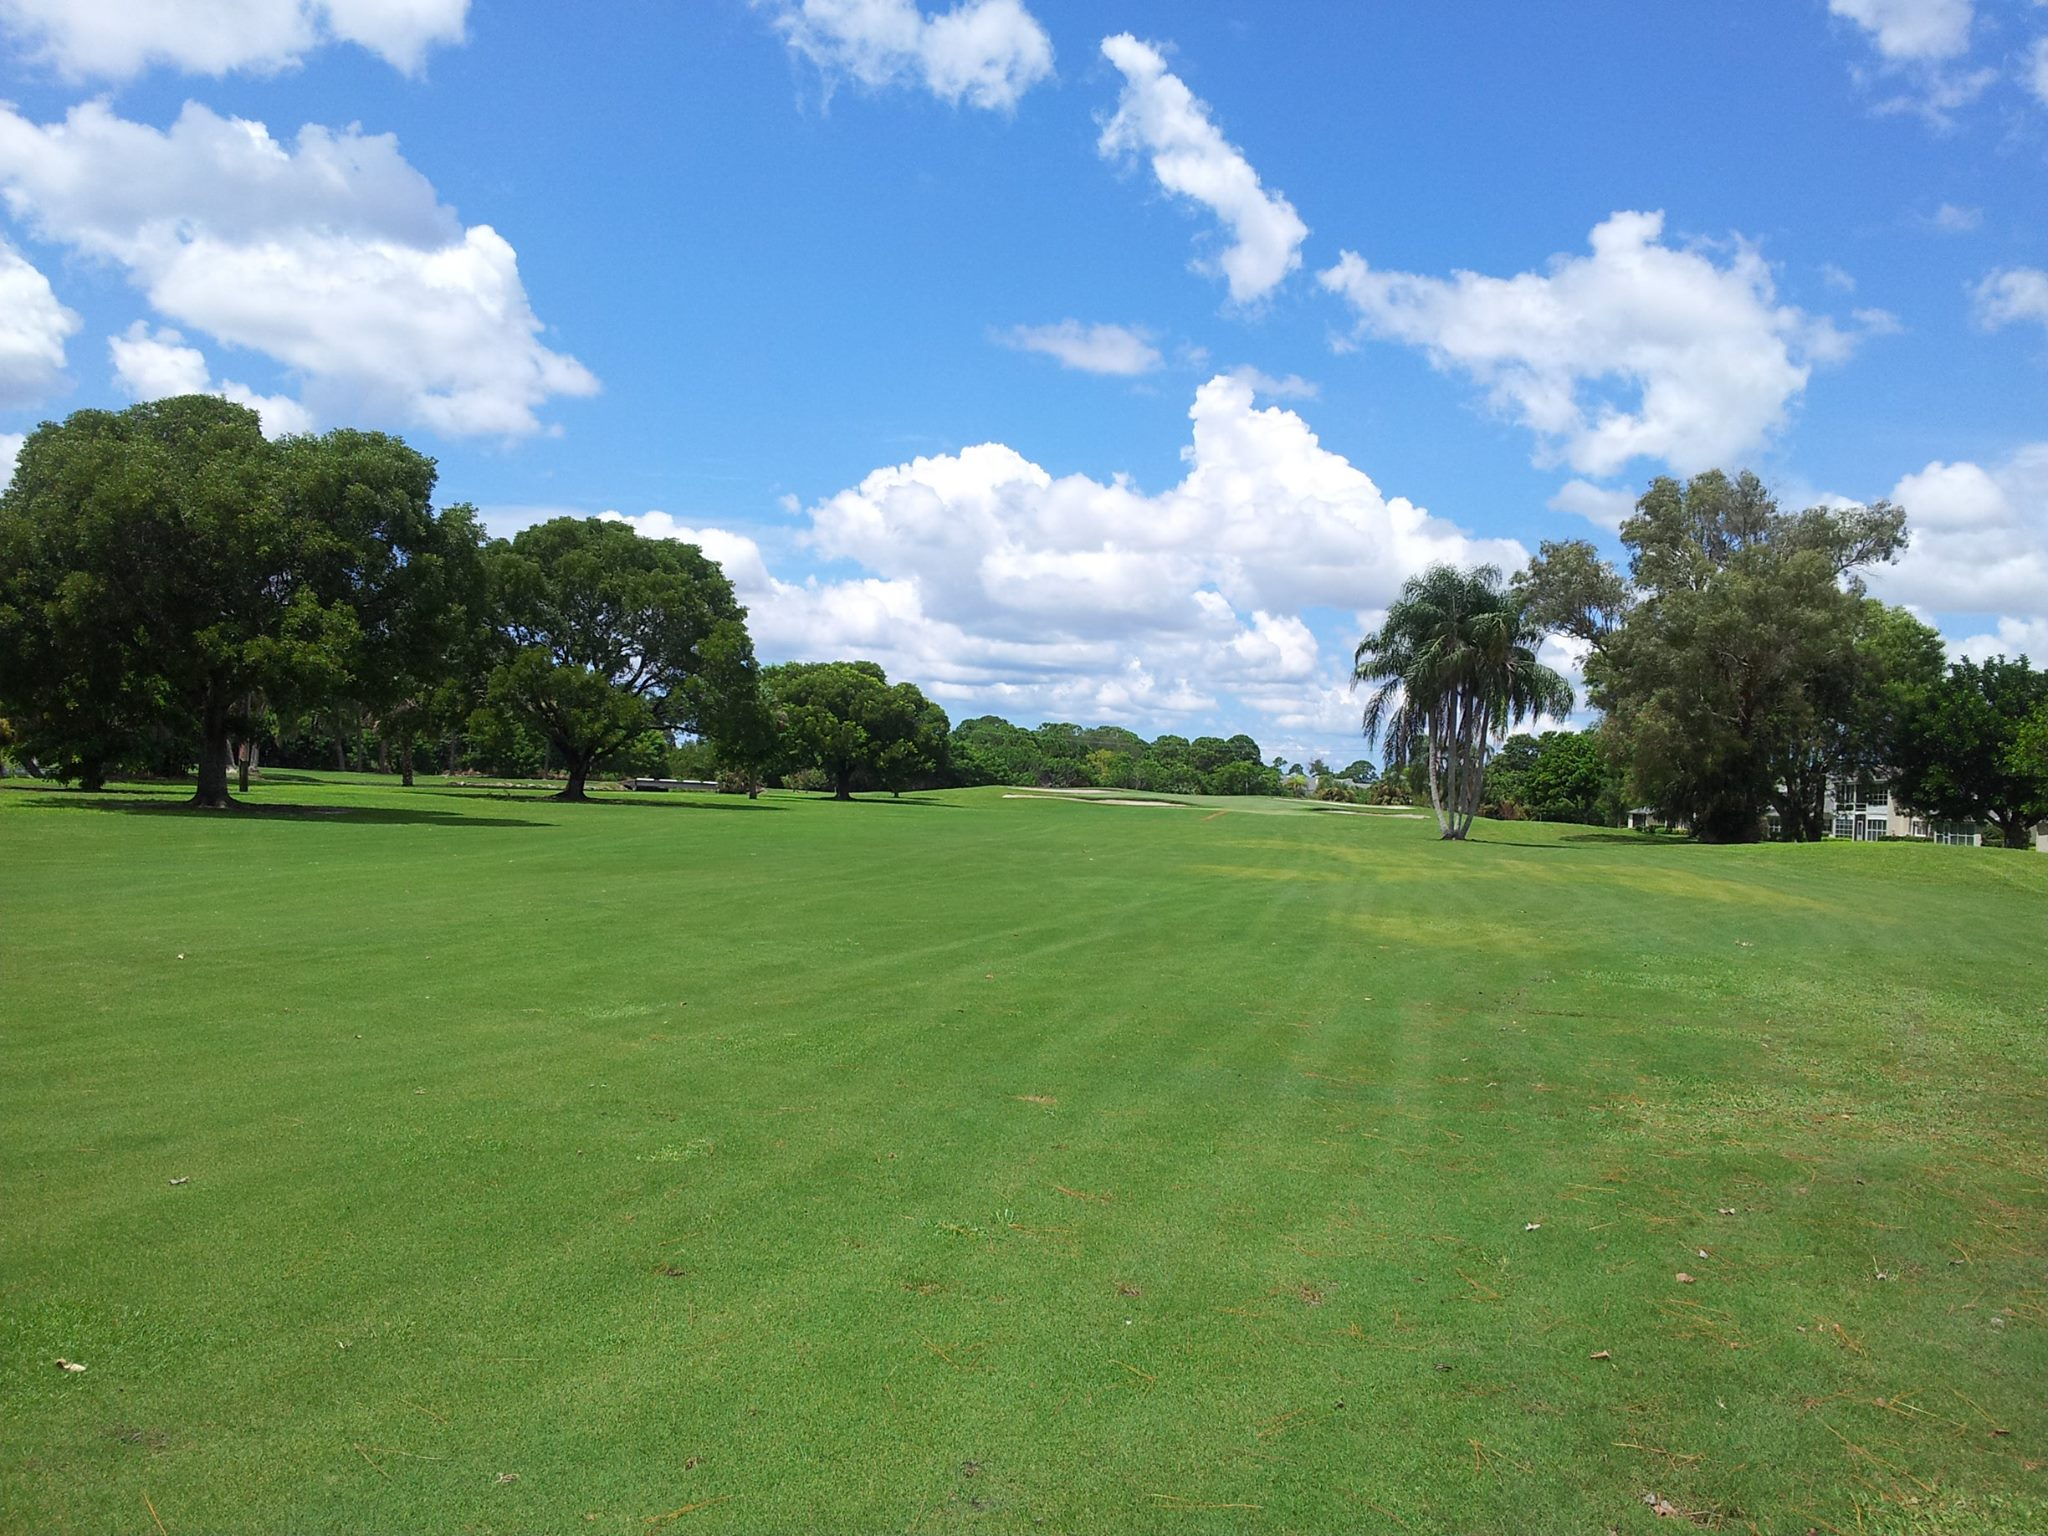 Overview of golf course named Myerlee Country Club